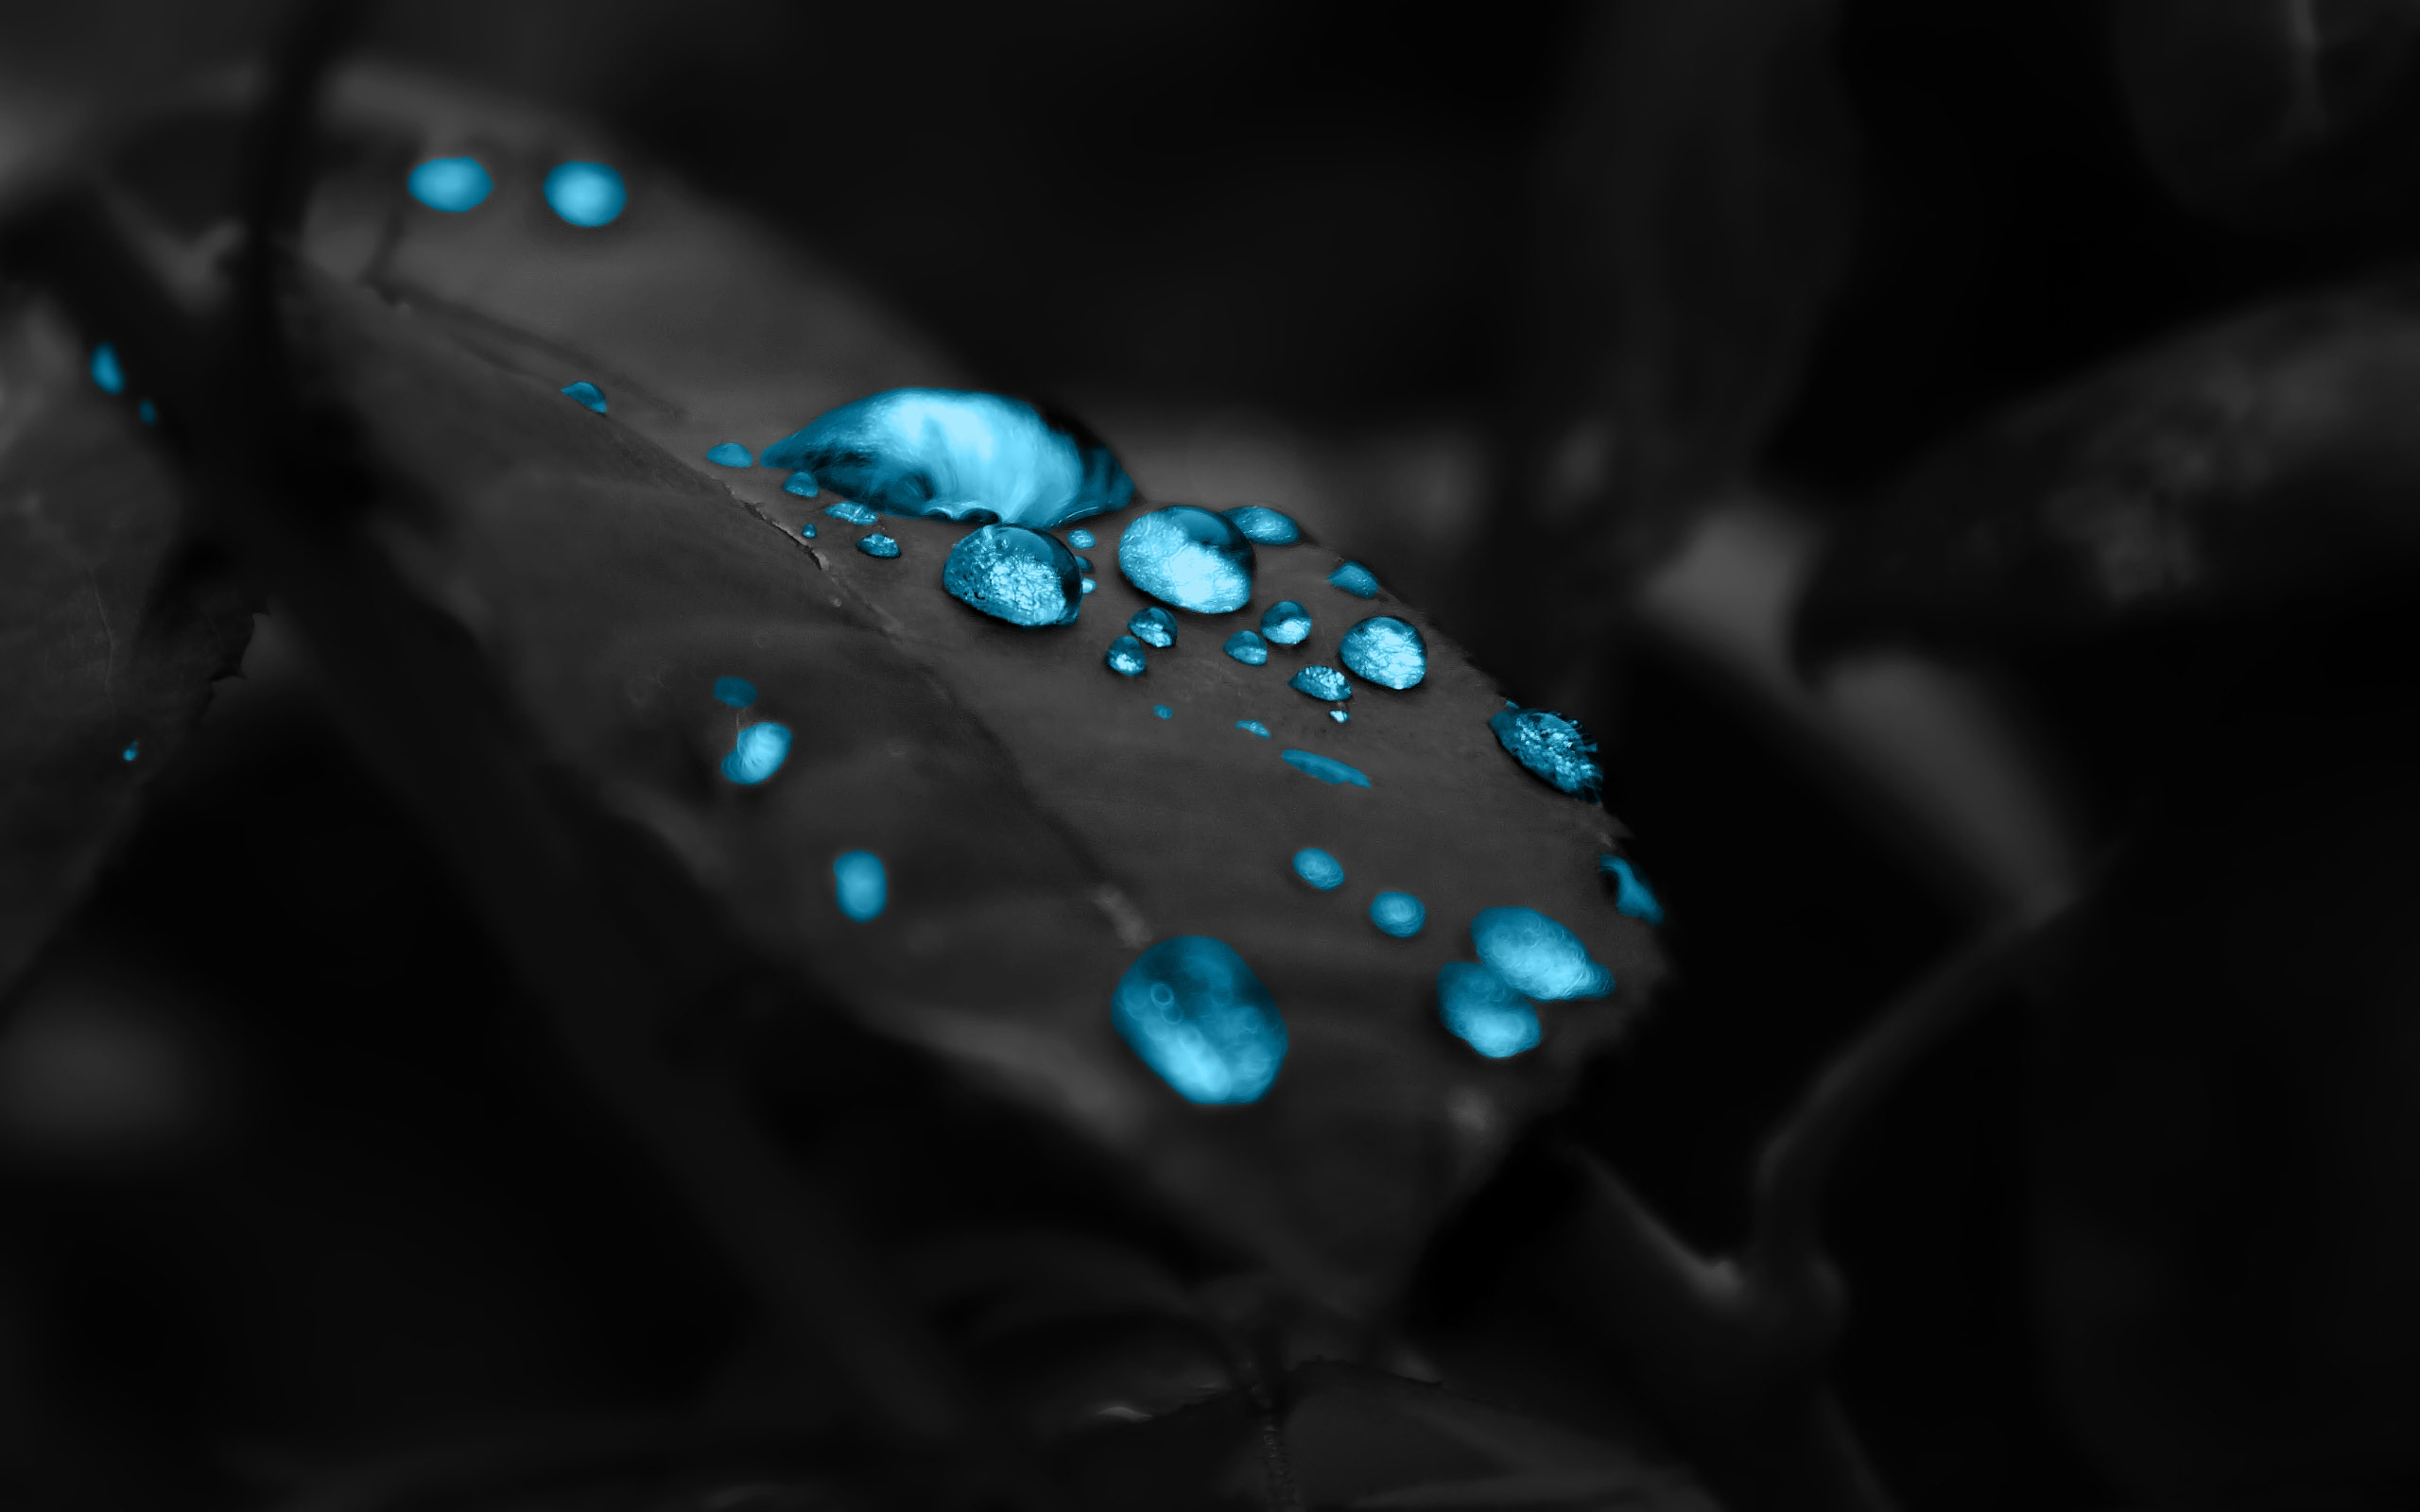 Glowing Blue Water Drops On Leaves Hd Wallpaper Wallpaper List 2560x1600